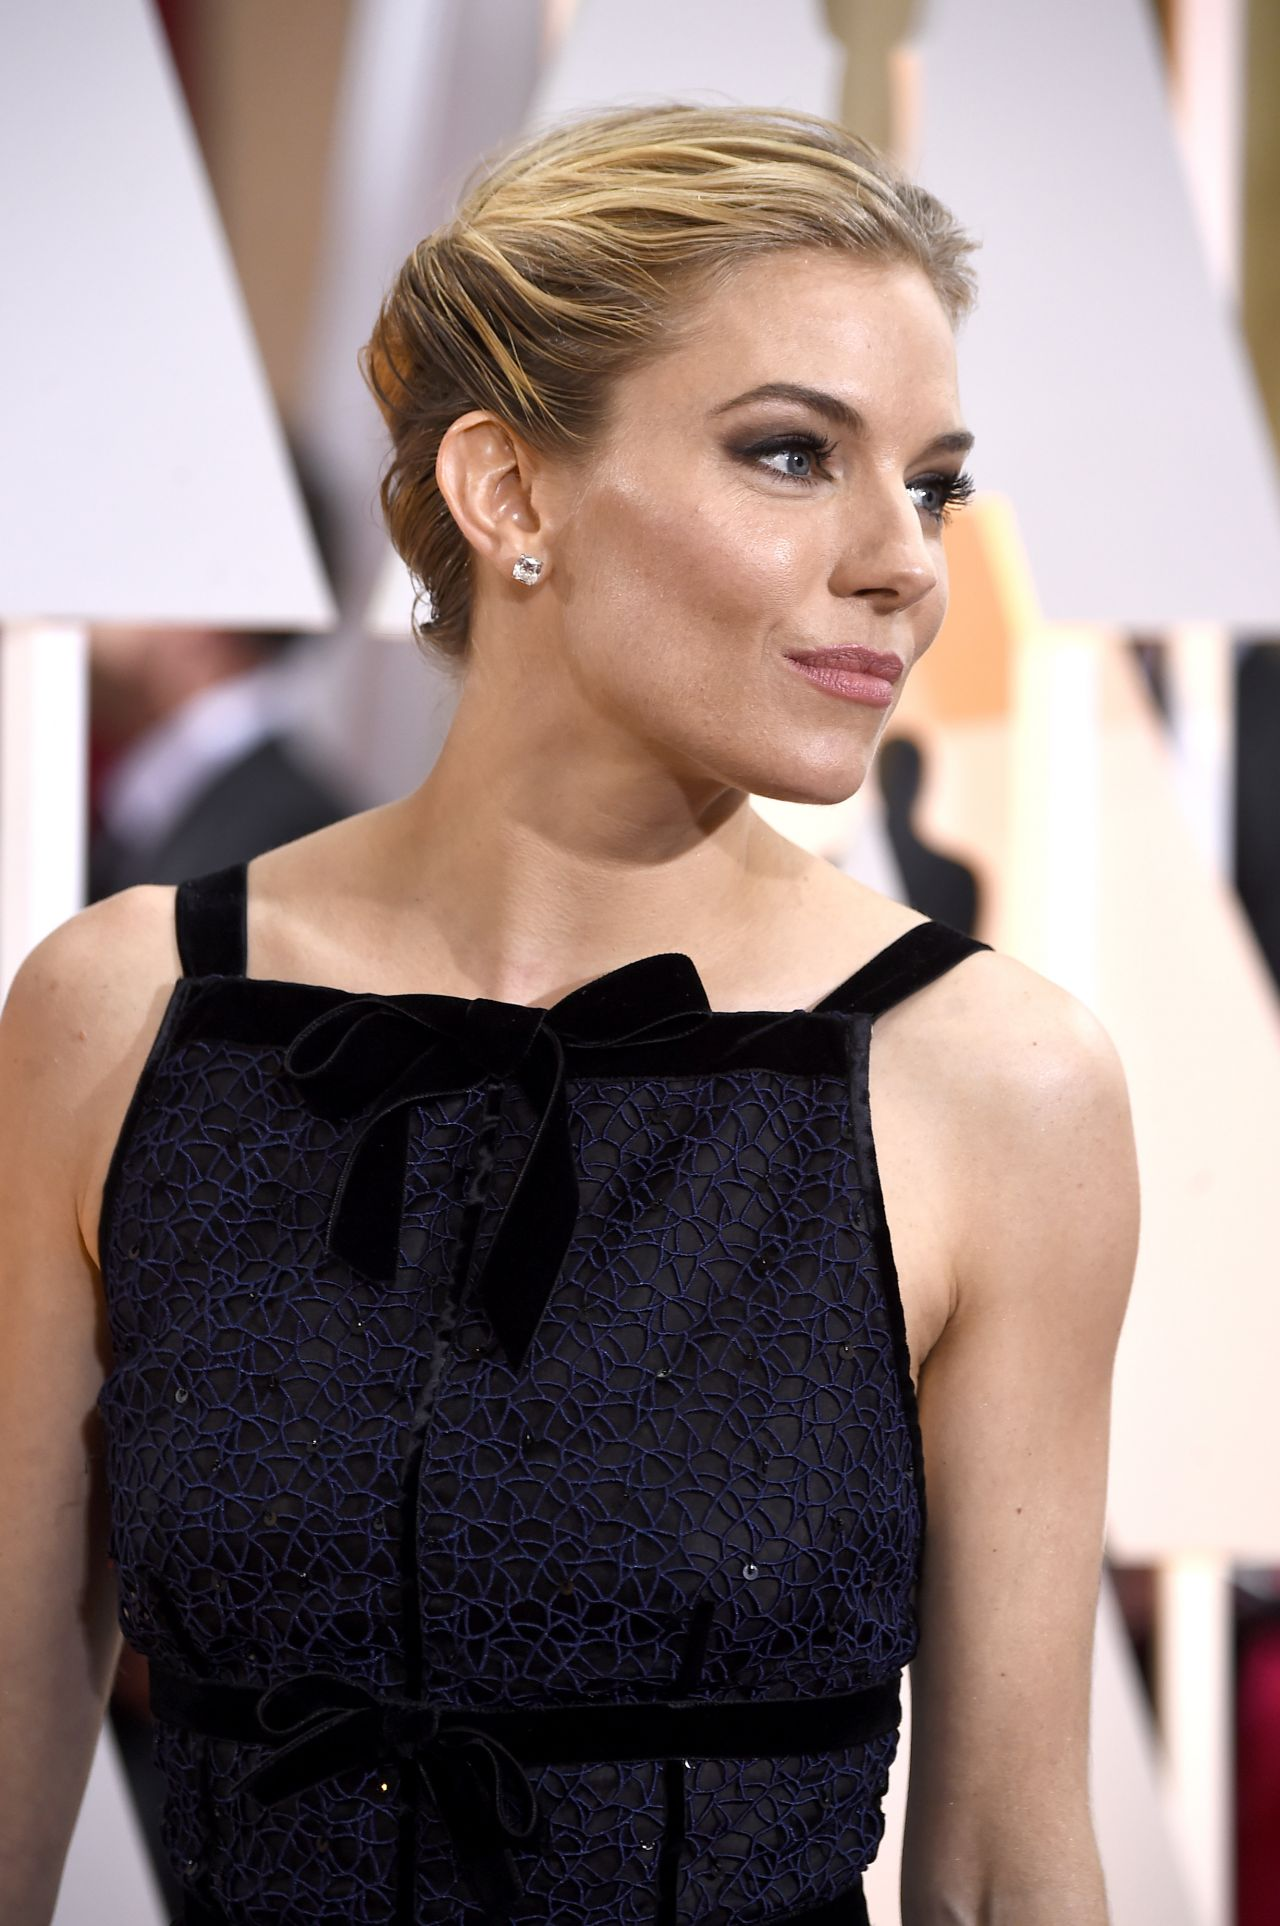 Sienna Miller 2015 Oscars Red Carpet In Hollywood